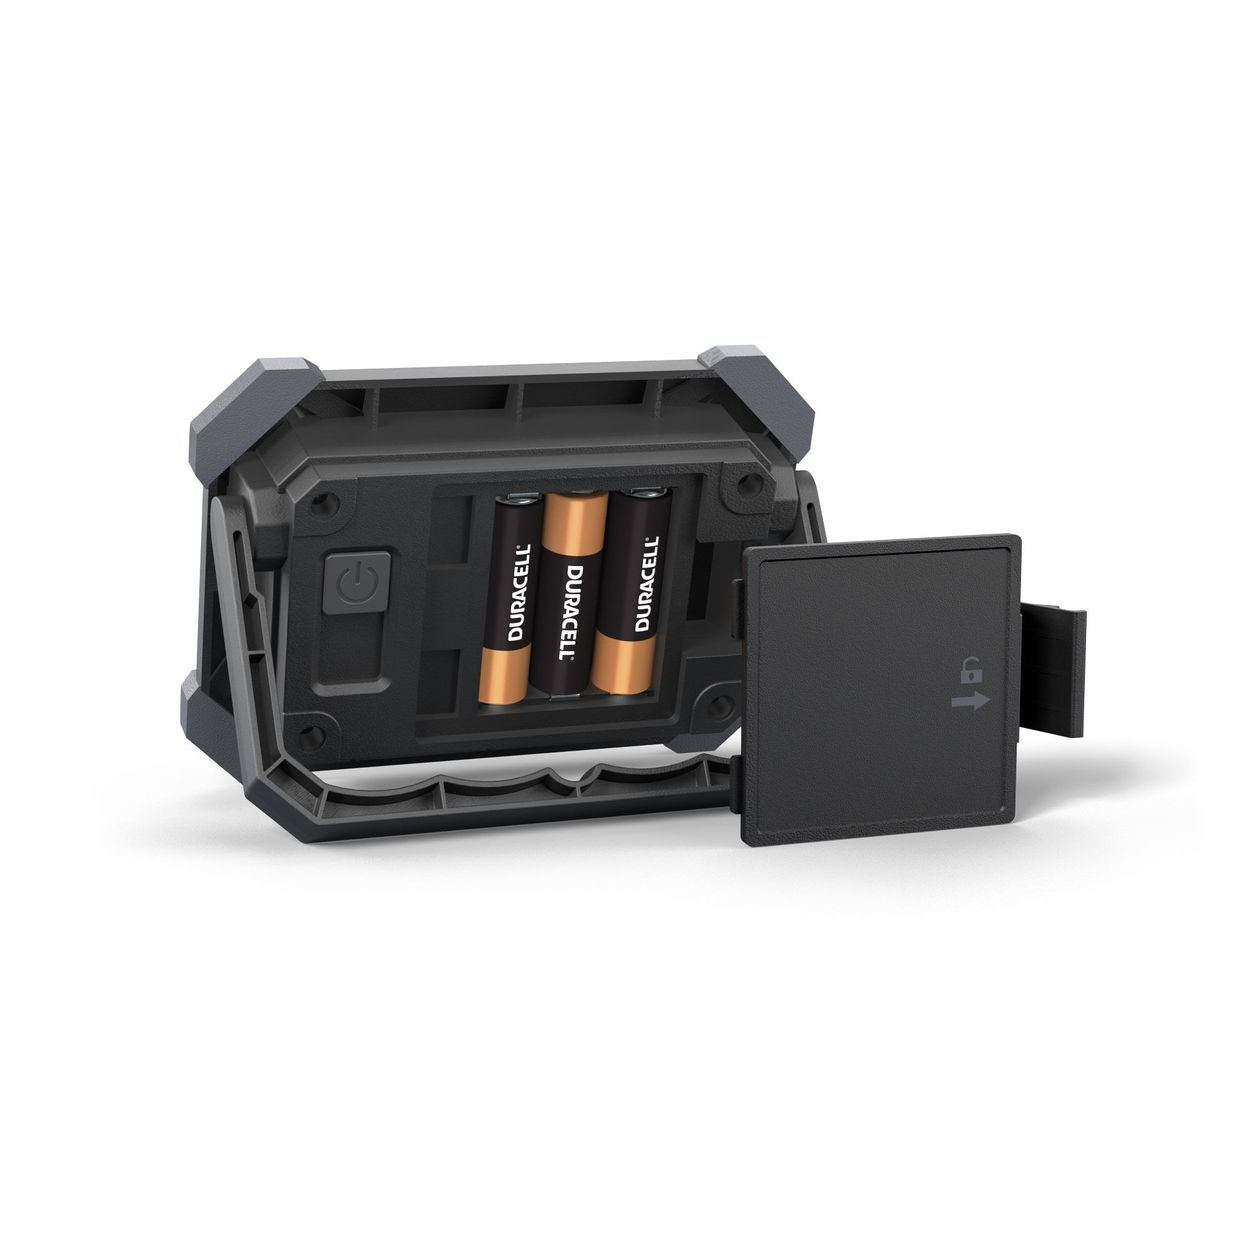 Image of the back of the worklight with battery compartment open showing Duracell batteries